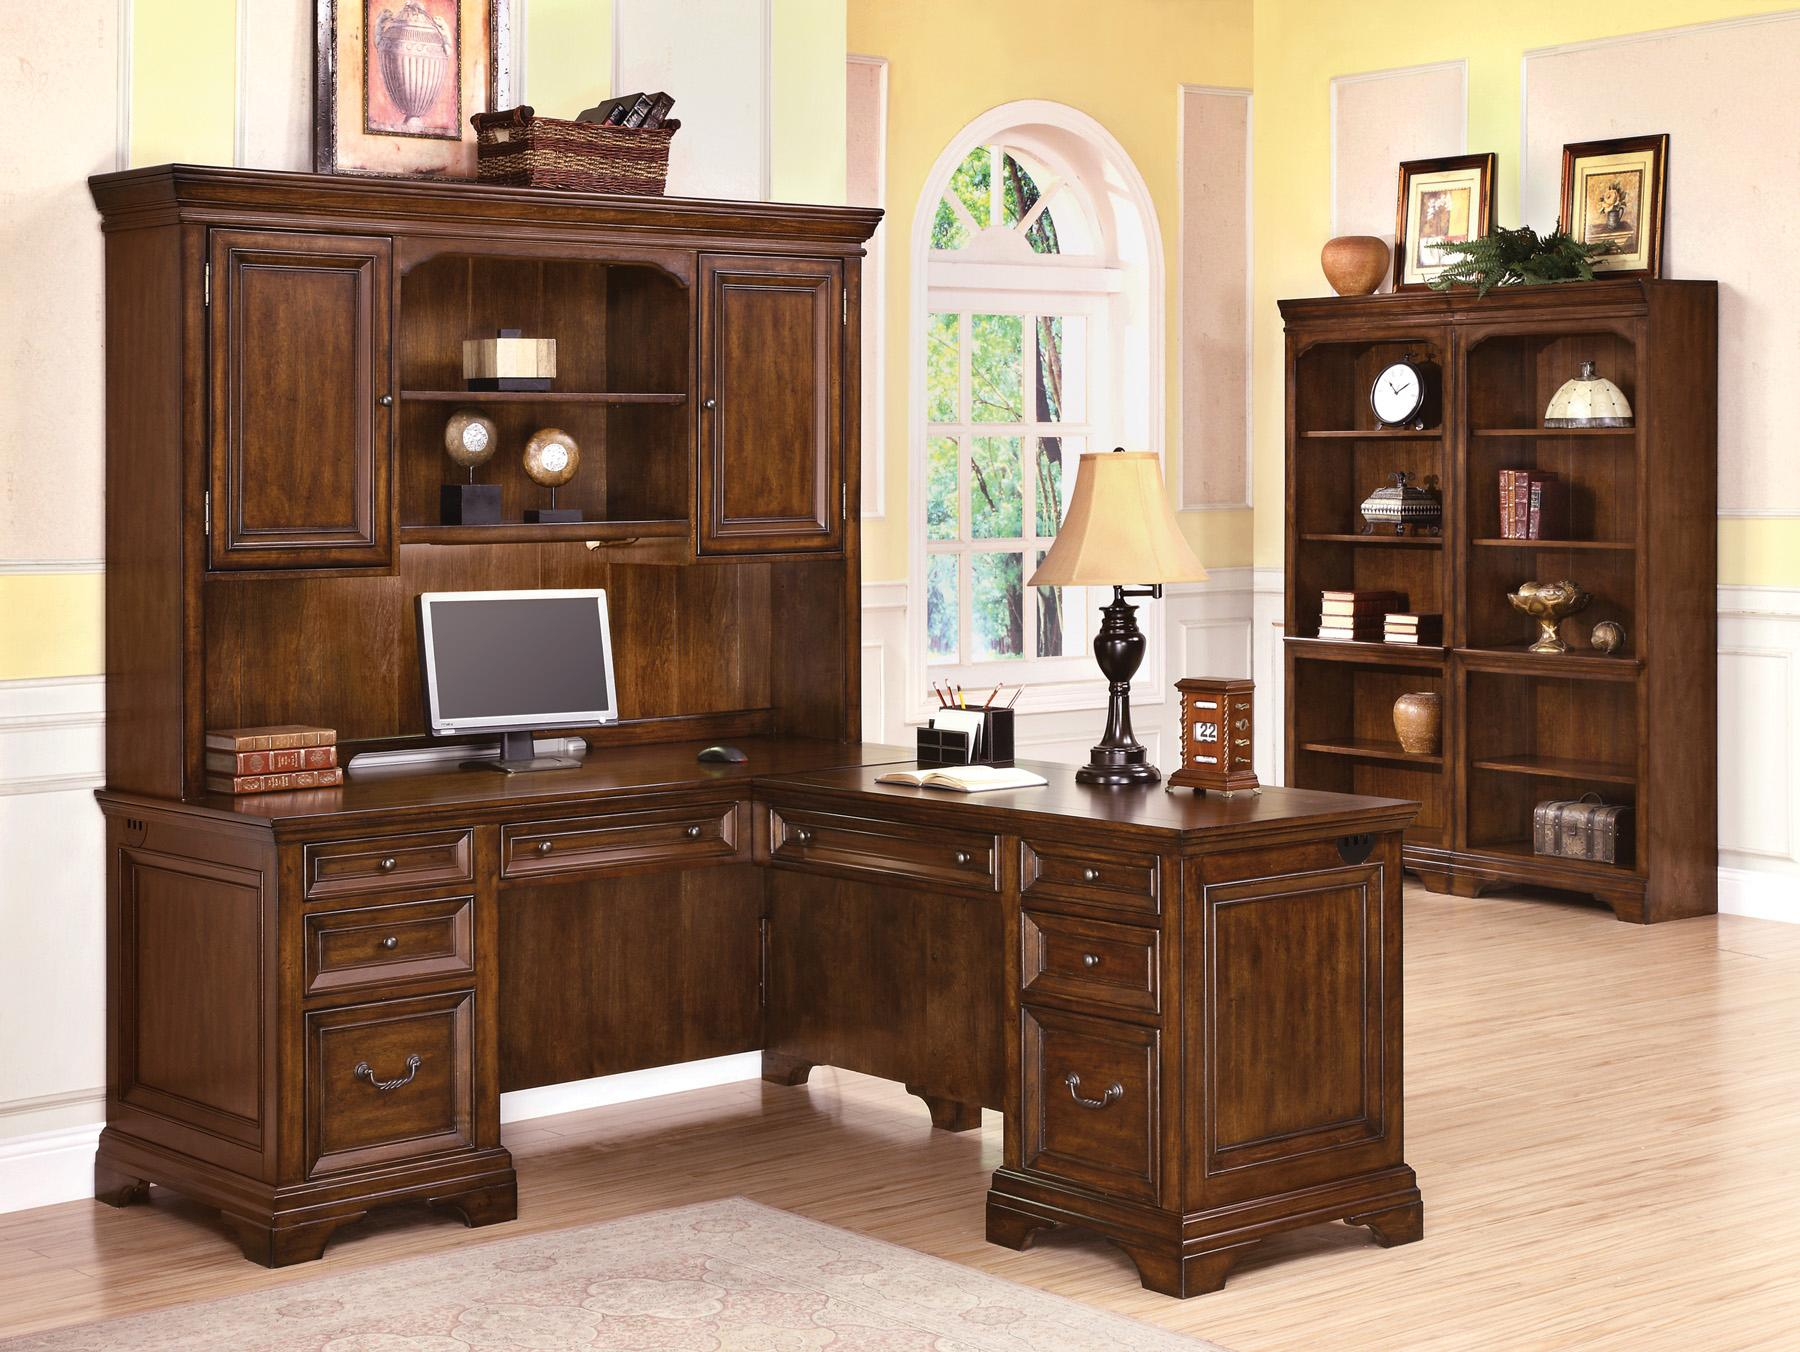 this floral or a covered front s secretary desk beautiful the dates drop fine and urn splendid around completely secretaire dutch century with marquetry walnut is wp bureau